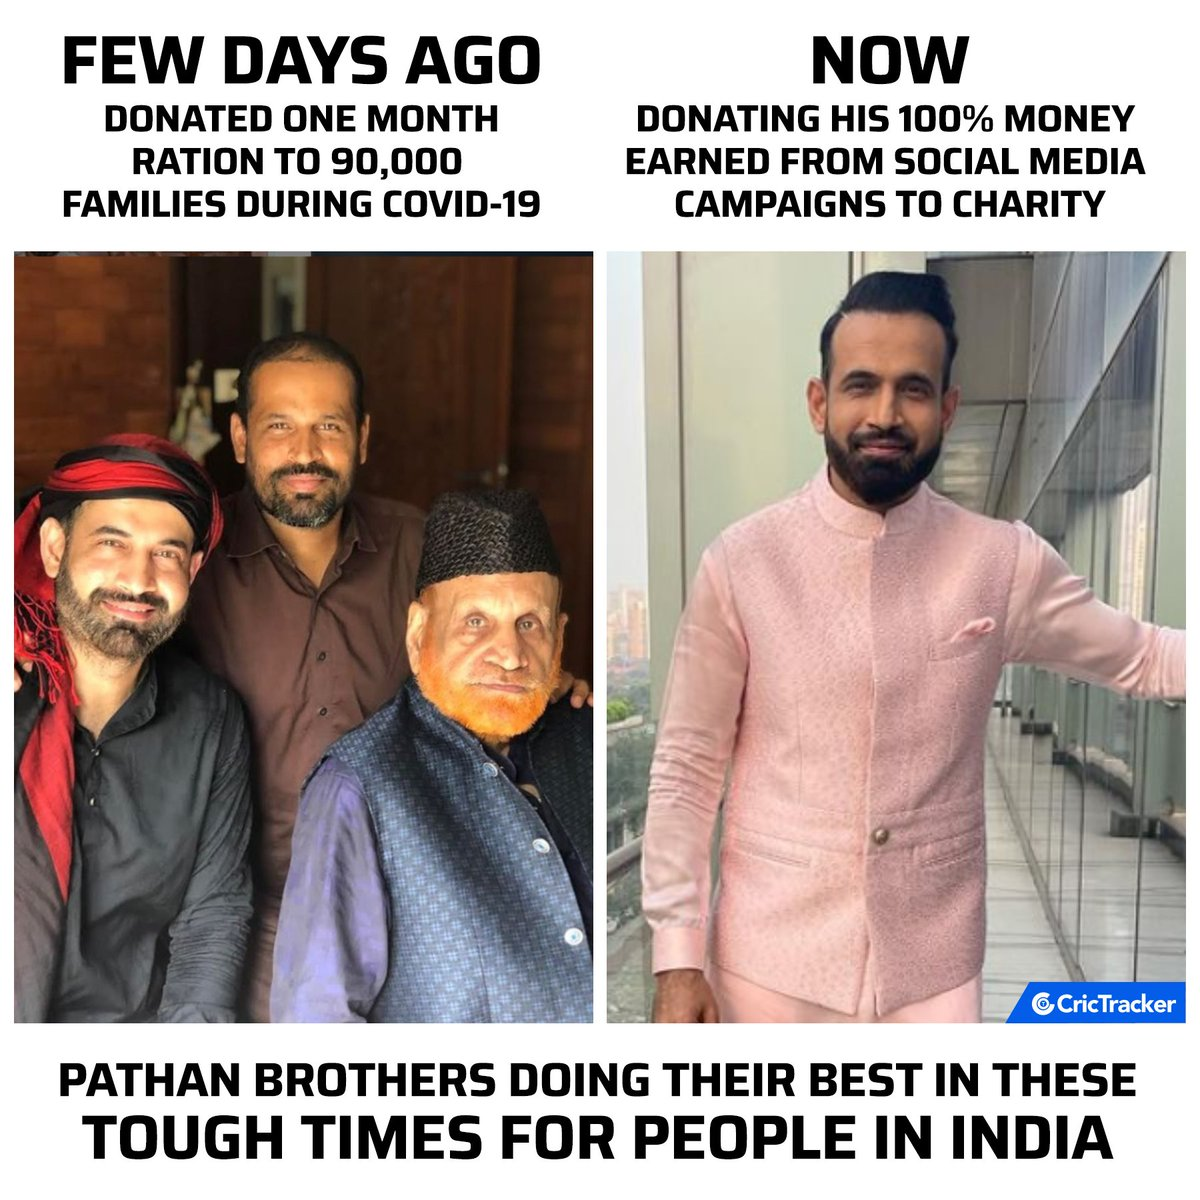 """CricTracker on Twitter: """"Irfan Pathan has decided to donate his 100% of money earned from social media campaigns to charity. #IrfanPathan #Cricket #CricTracker #COVID19… https://t.co/tSNgZXSsiP"""""""